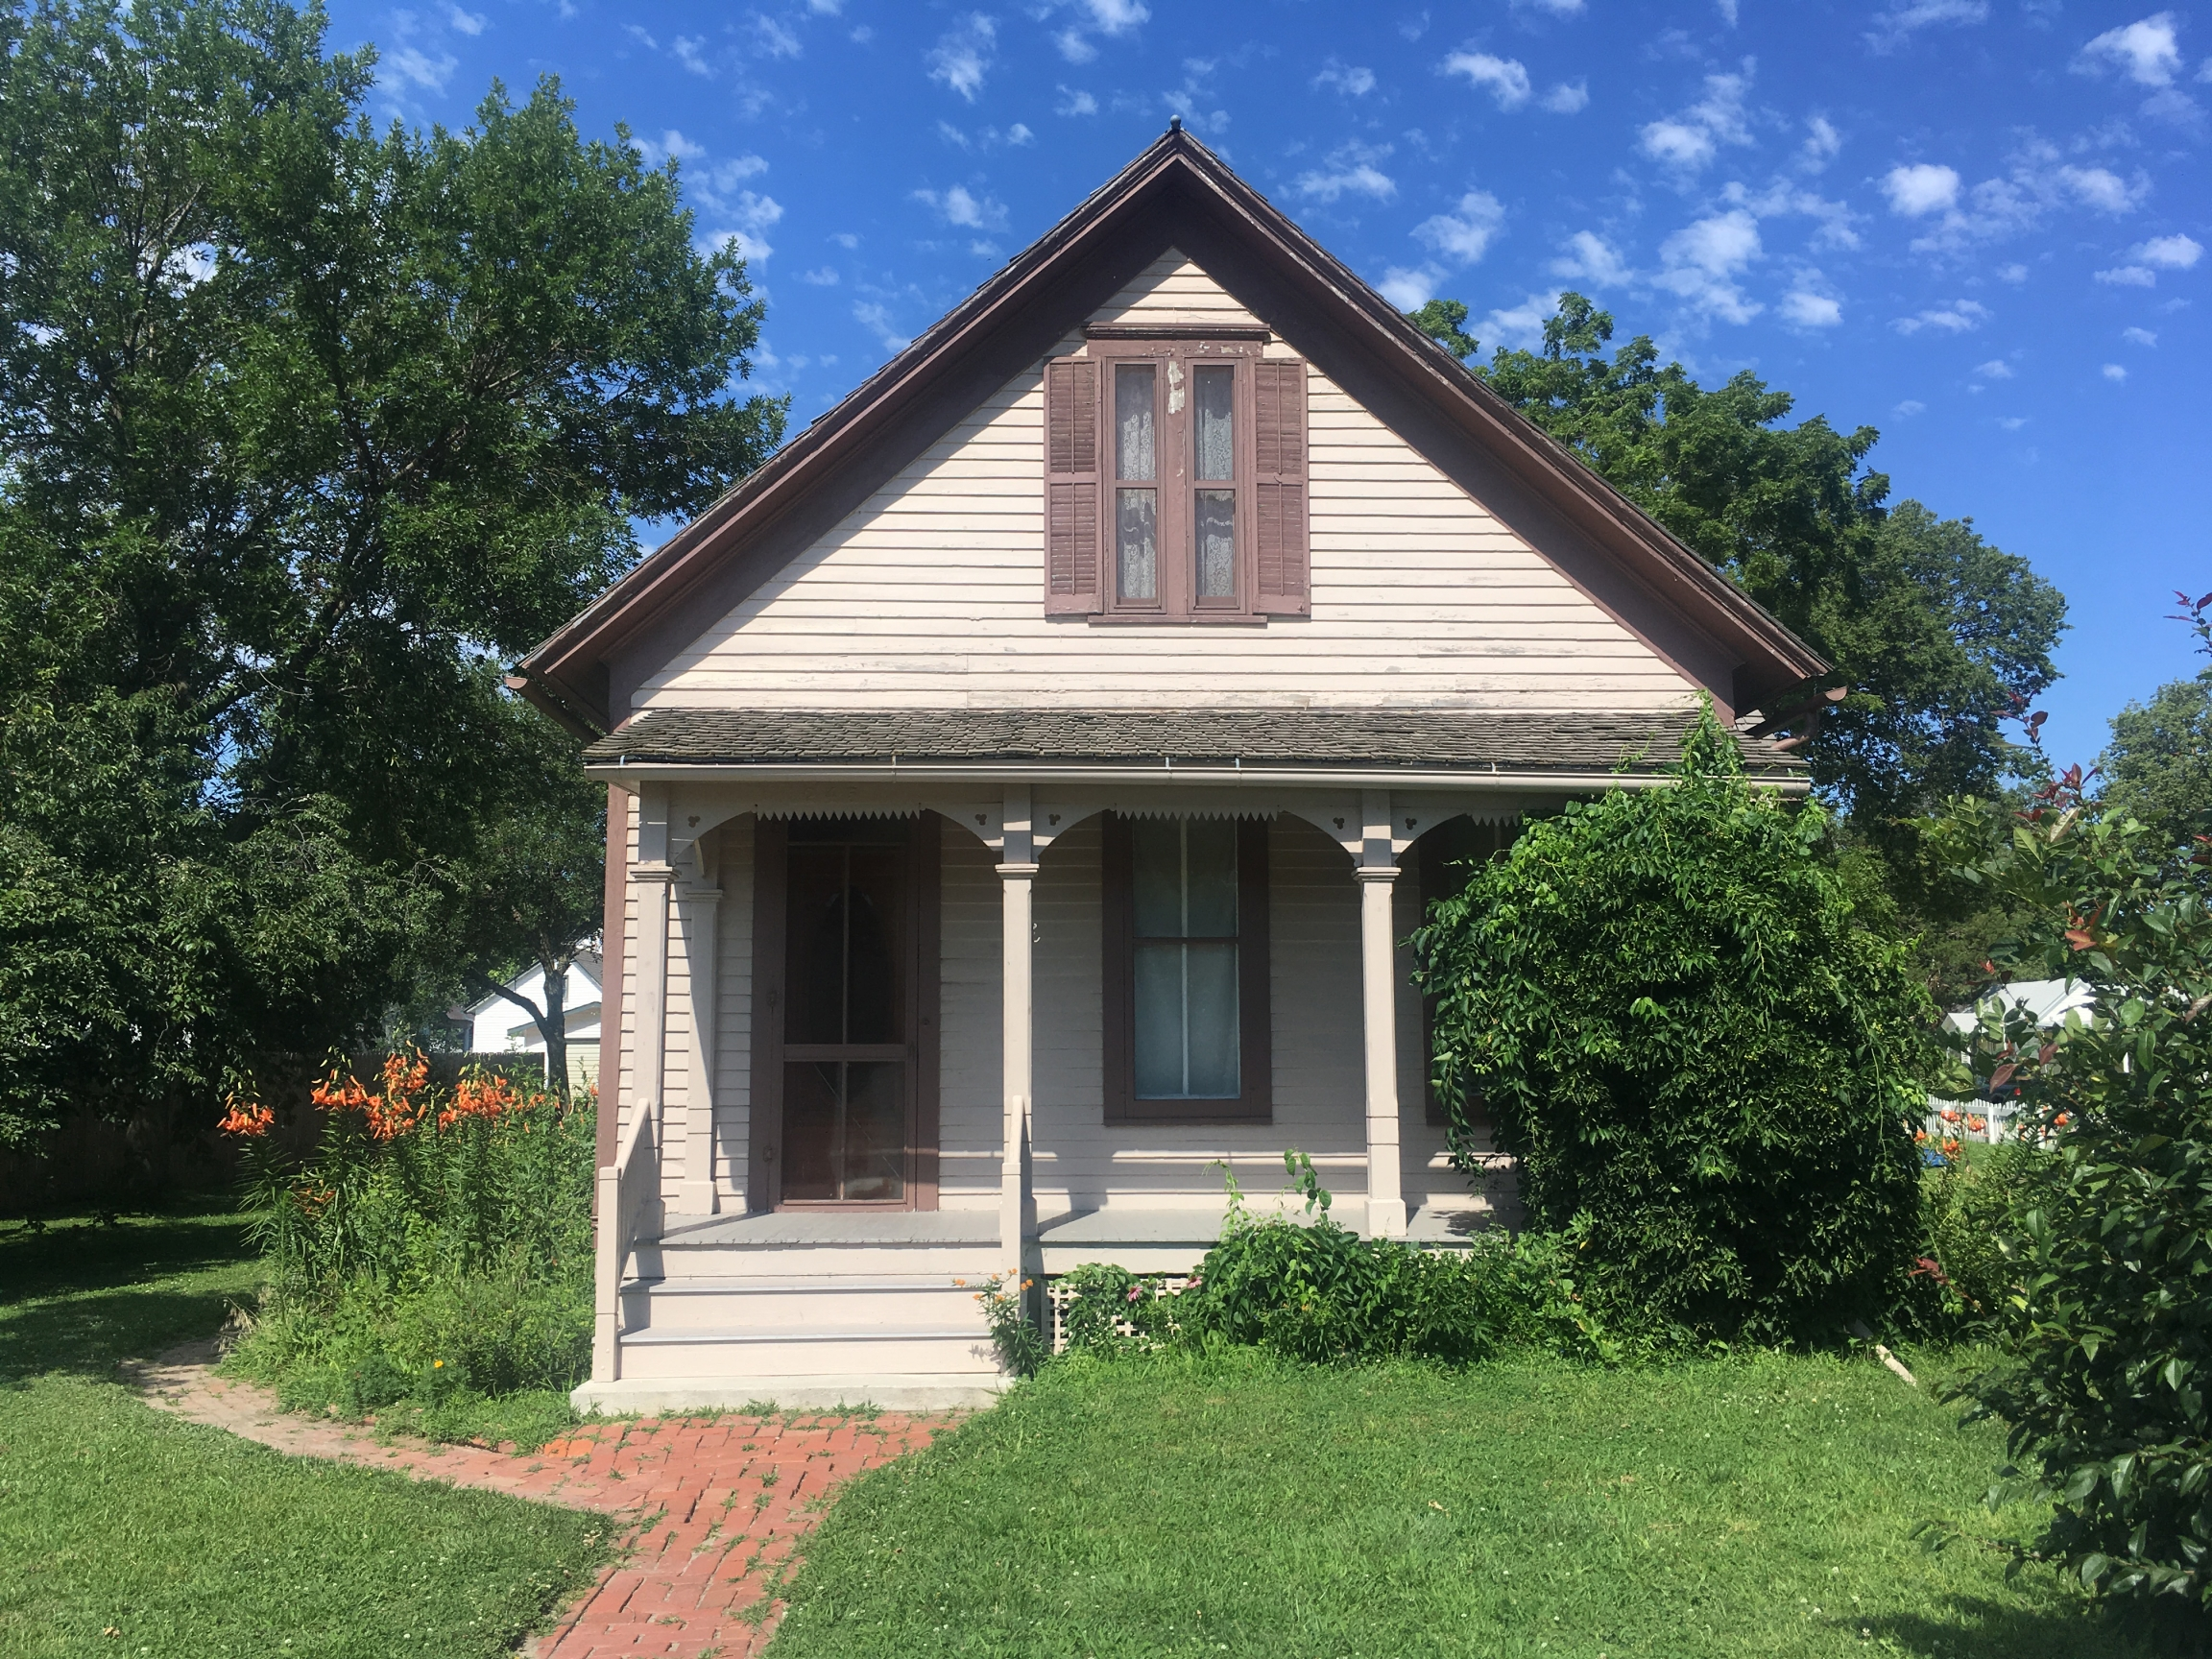 Willa Cather's childhood home, now the Willa Cather Pioneer Memorial, in Red Cloud, Nebraska.